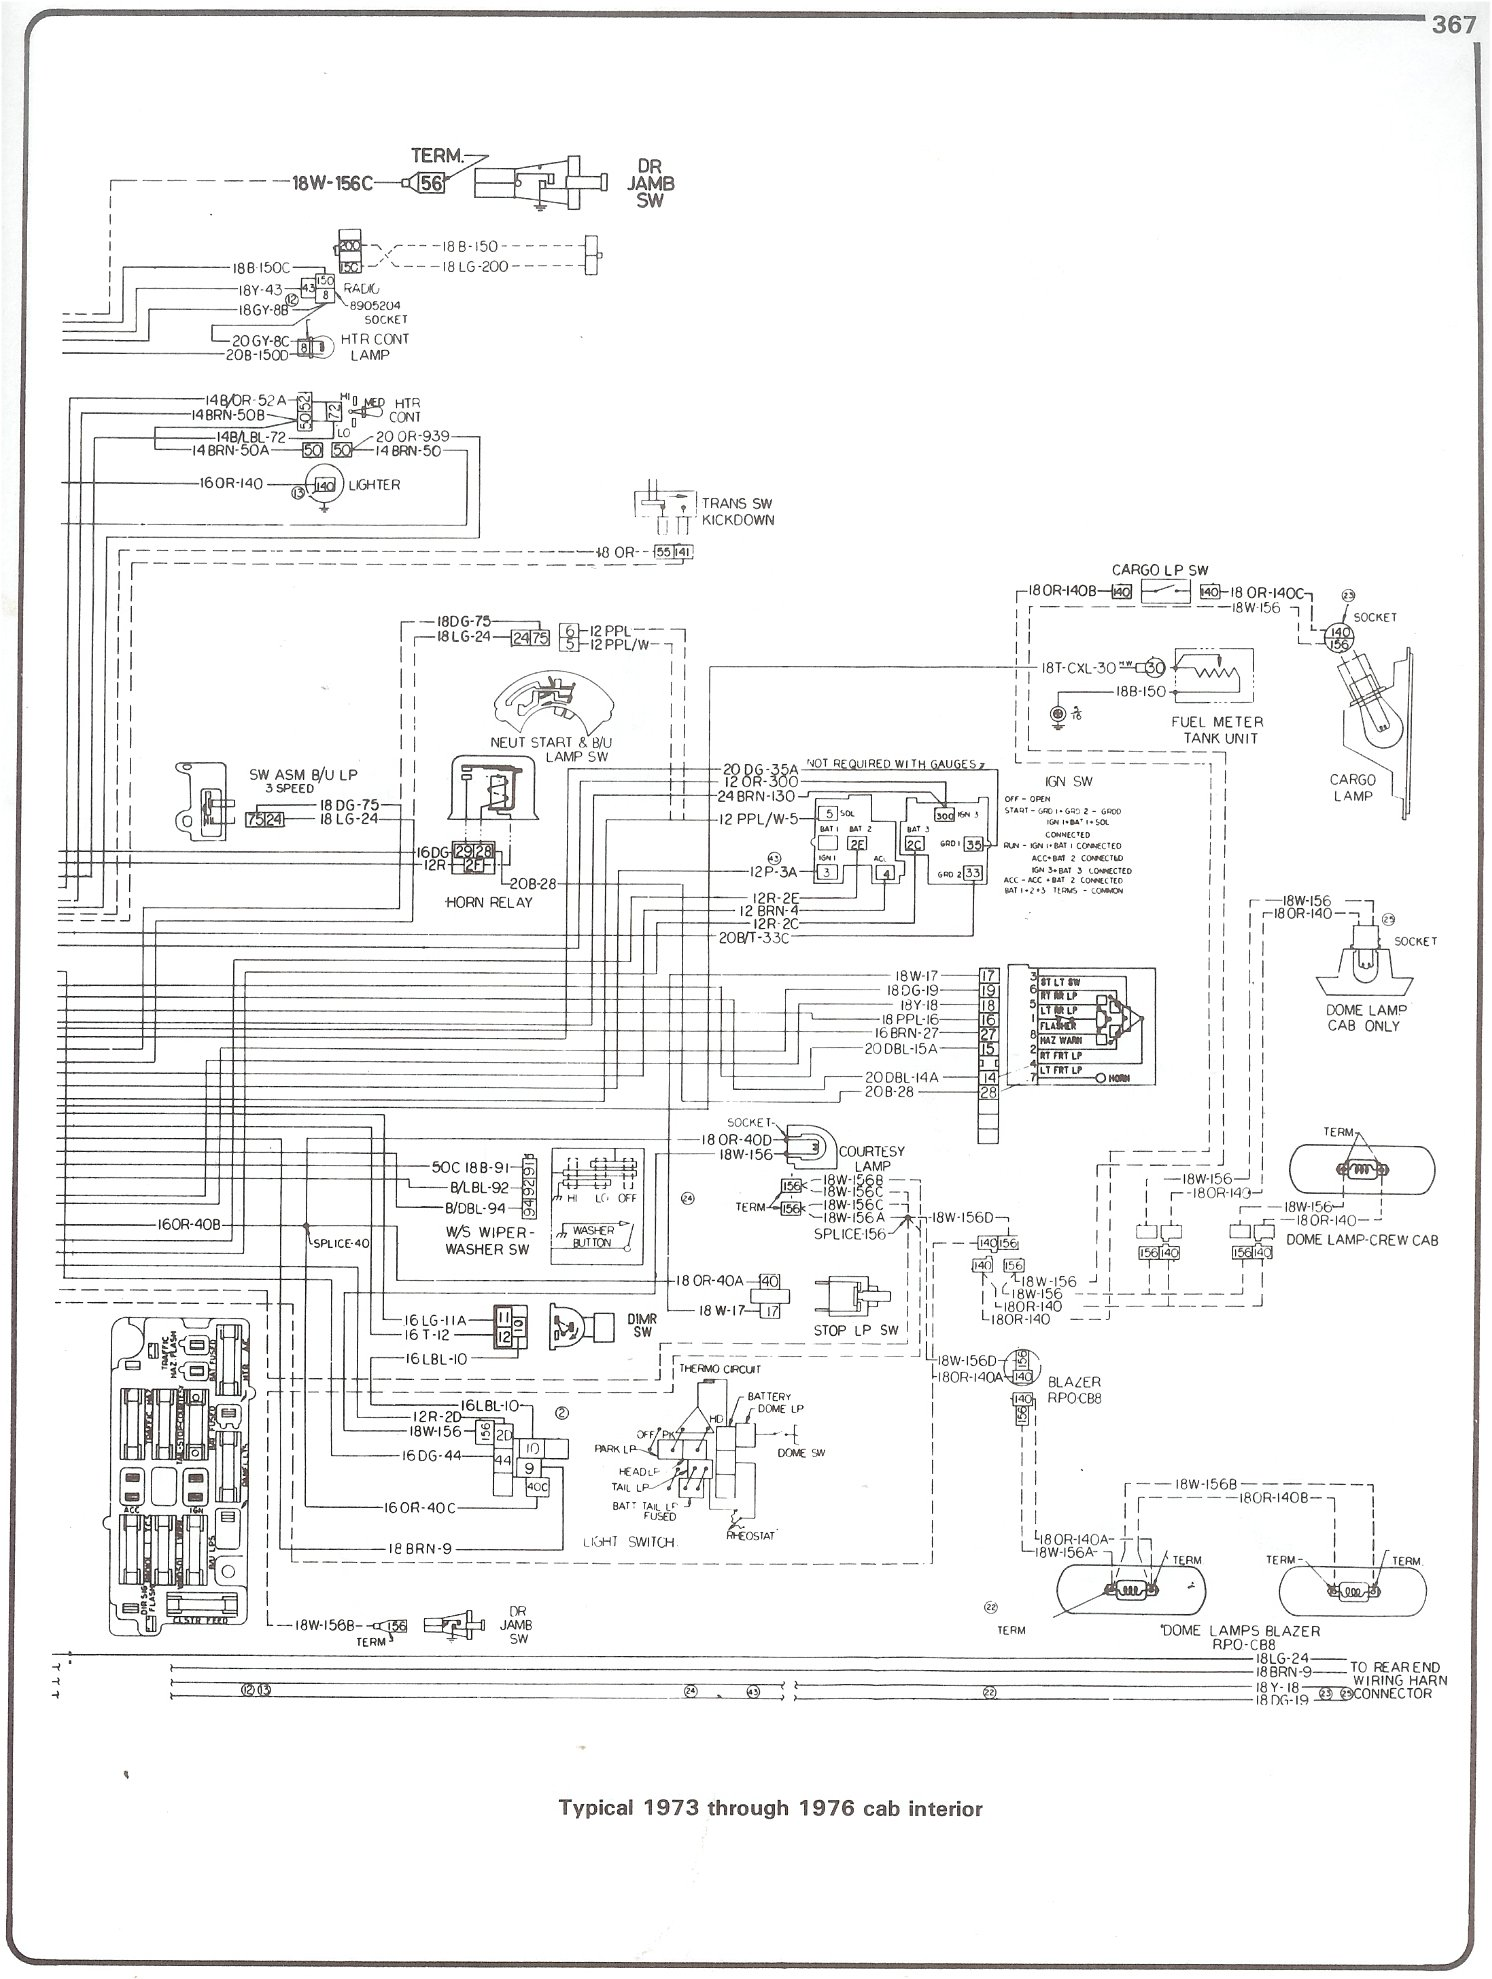 73 76_cab_inter 1976 chevy truck wiring diagram 1976 gmc wiring diagram \u2022 wiring 85 chevy truck wiring harness at gsmx.co